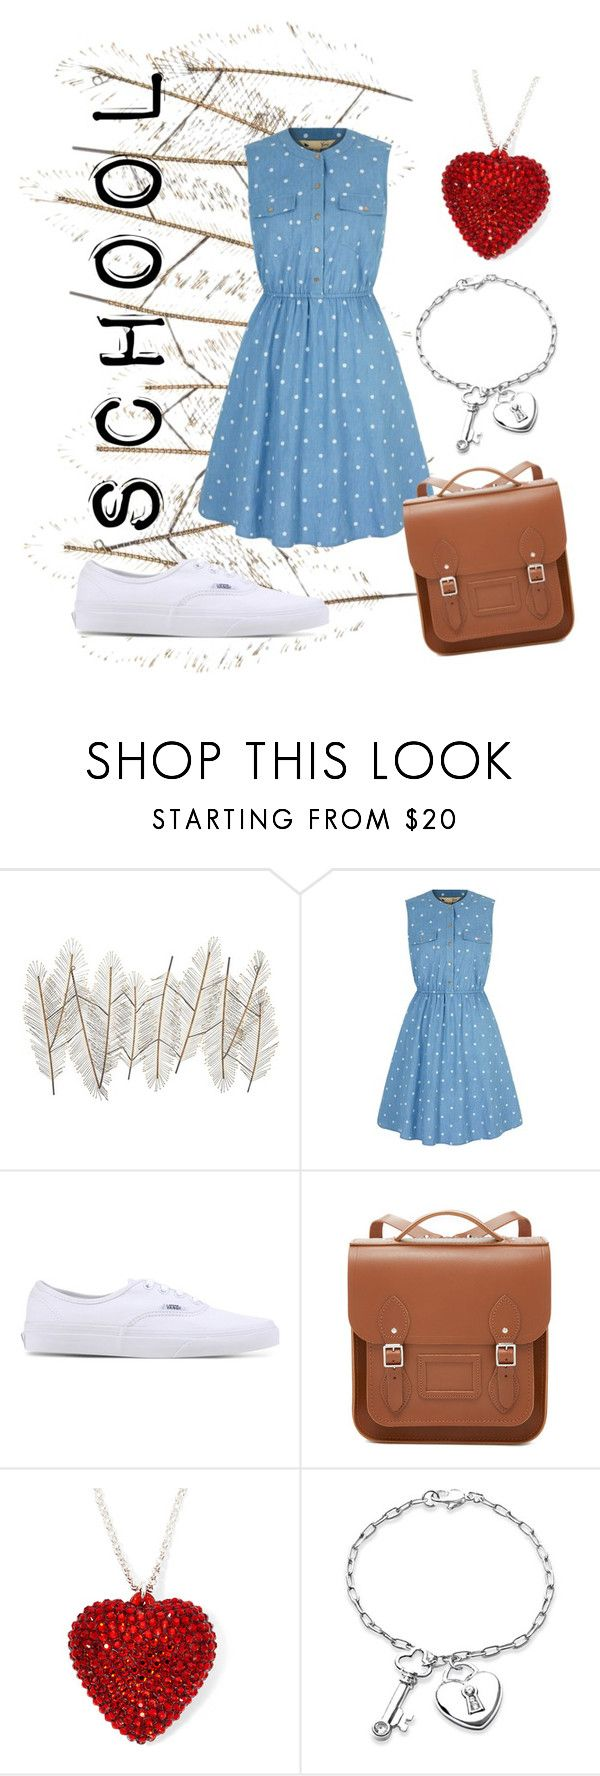 """School"" by dianamaria267 ❤ liked on Polyvore featuring Universal Lighting and Decor, Yumi, Vans, The Cambridge Satchel Company and Bling Jewelry"